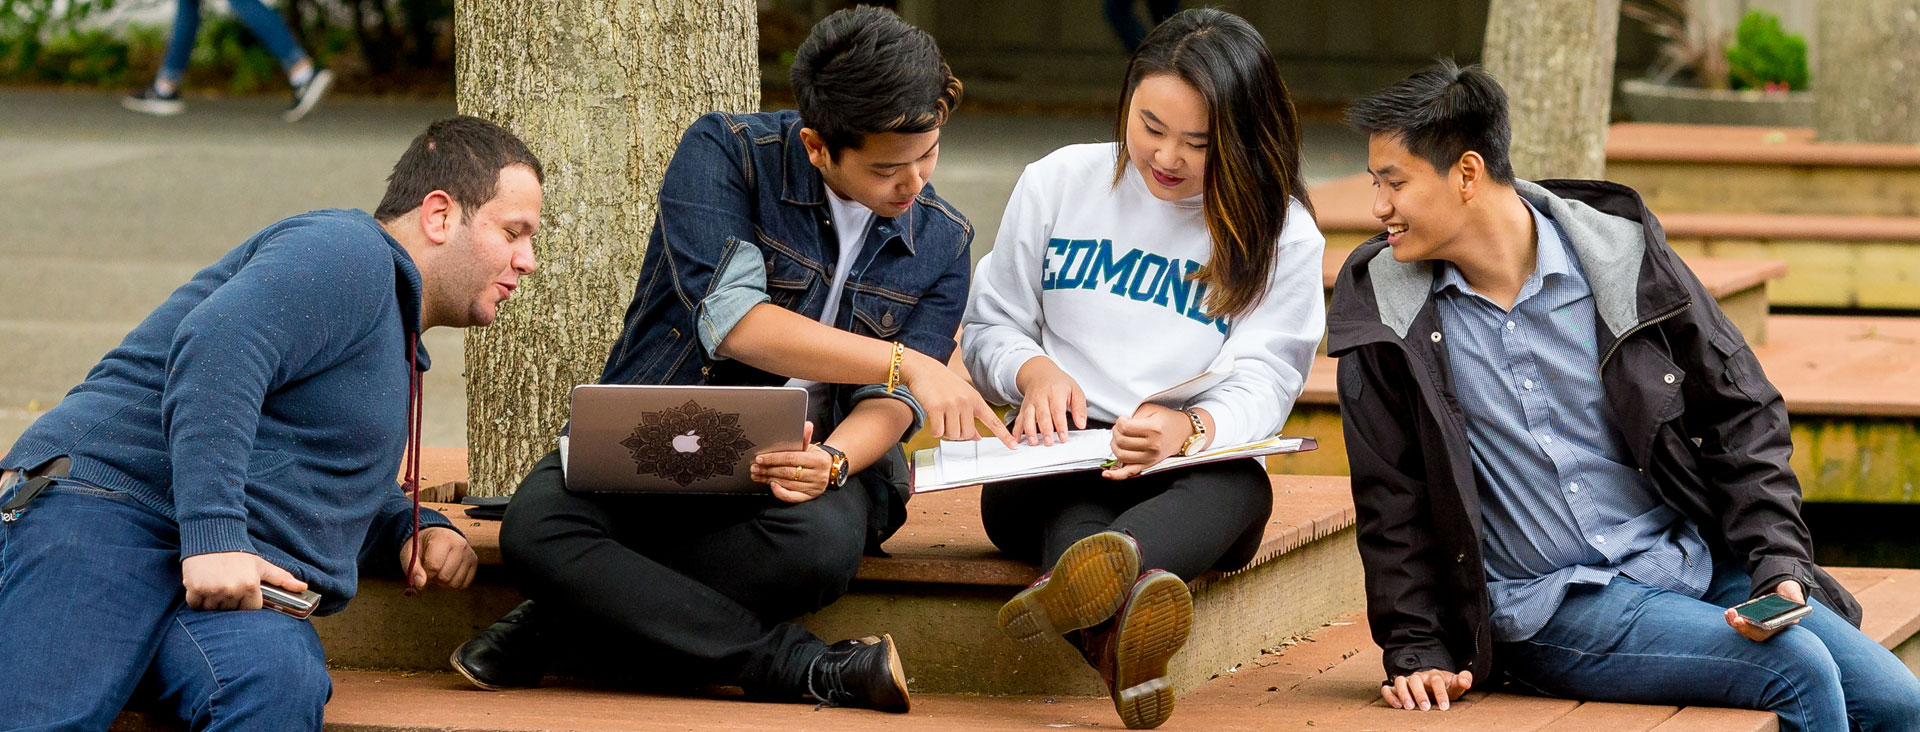 Students sitting on a bench in the courtyard